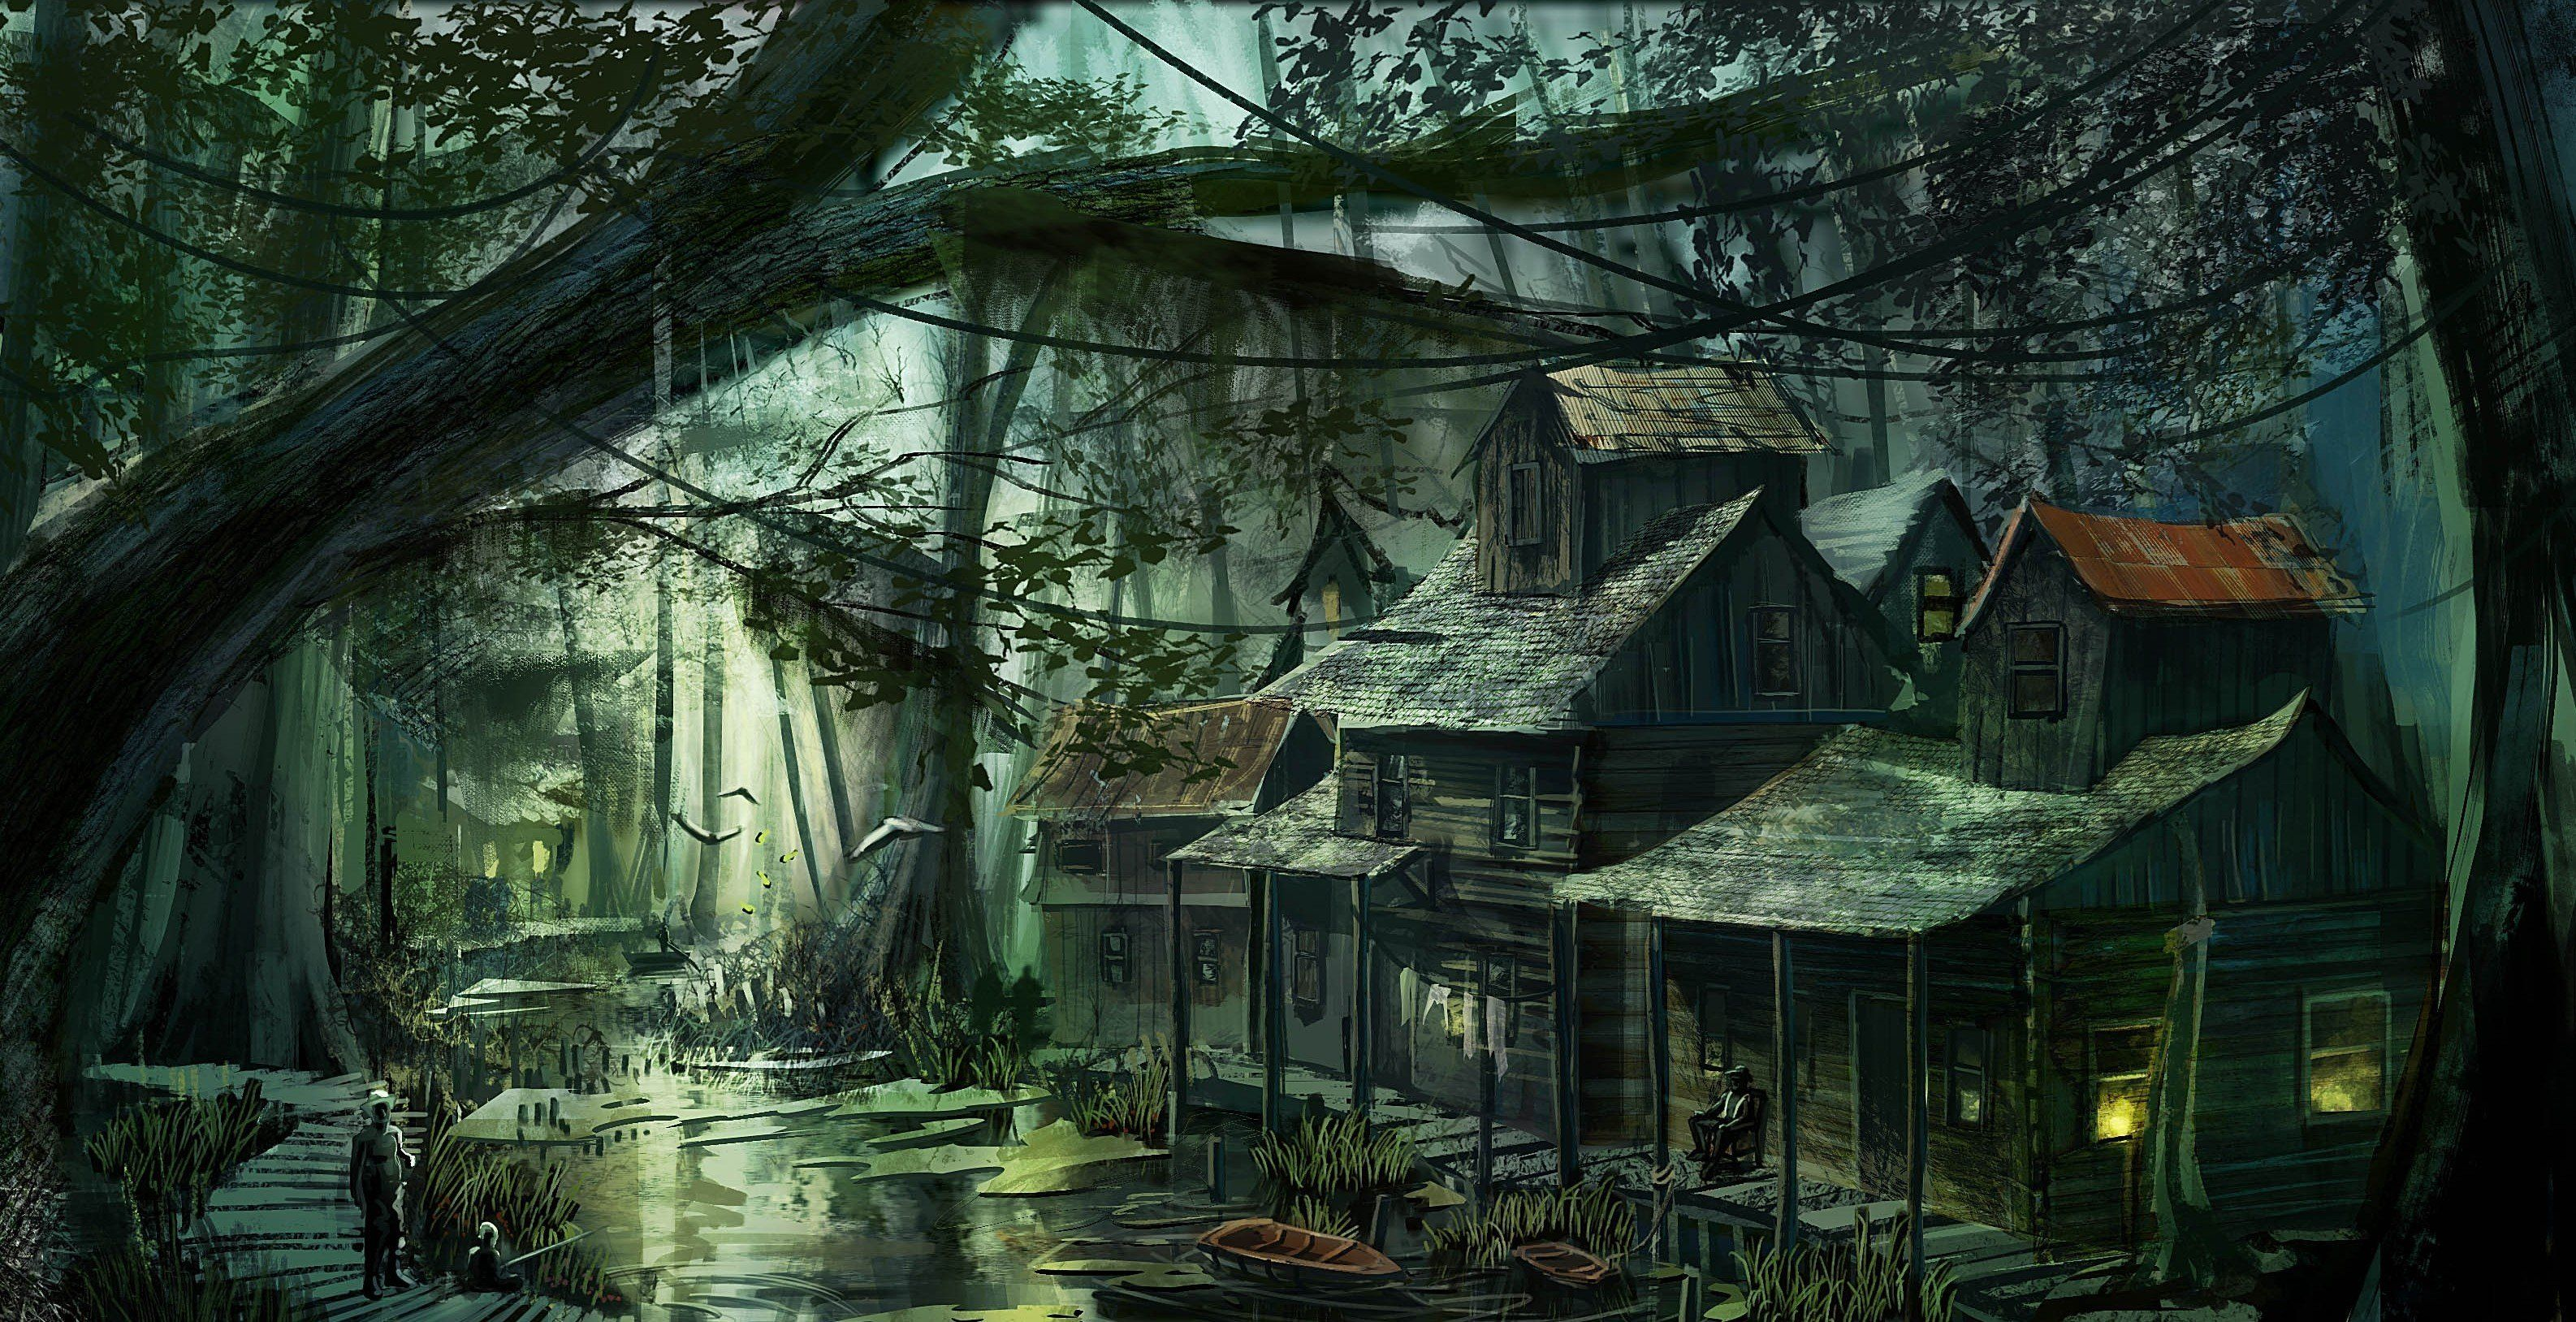 Artwork swamp villages swamp scenes fantasy landscape - Art village wallpaper ...